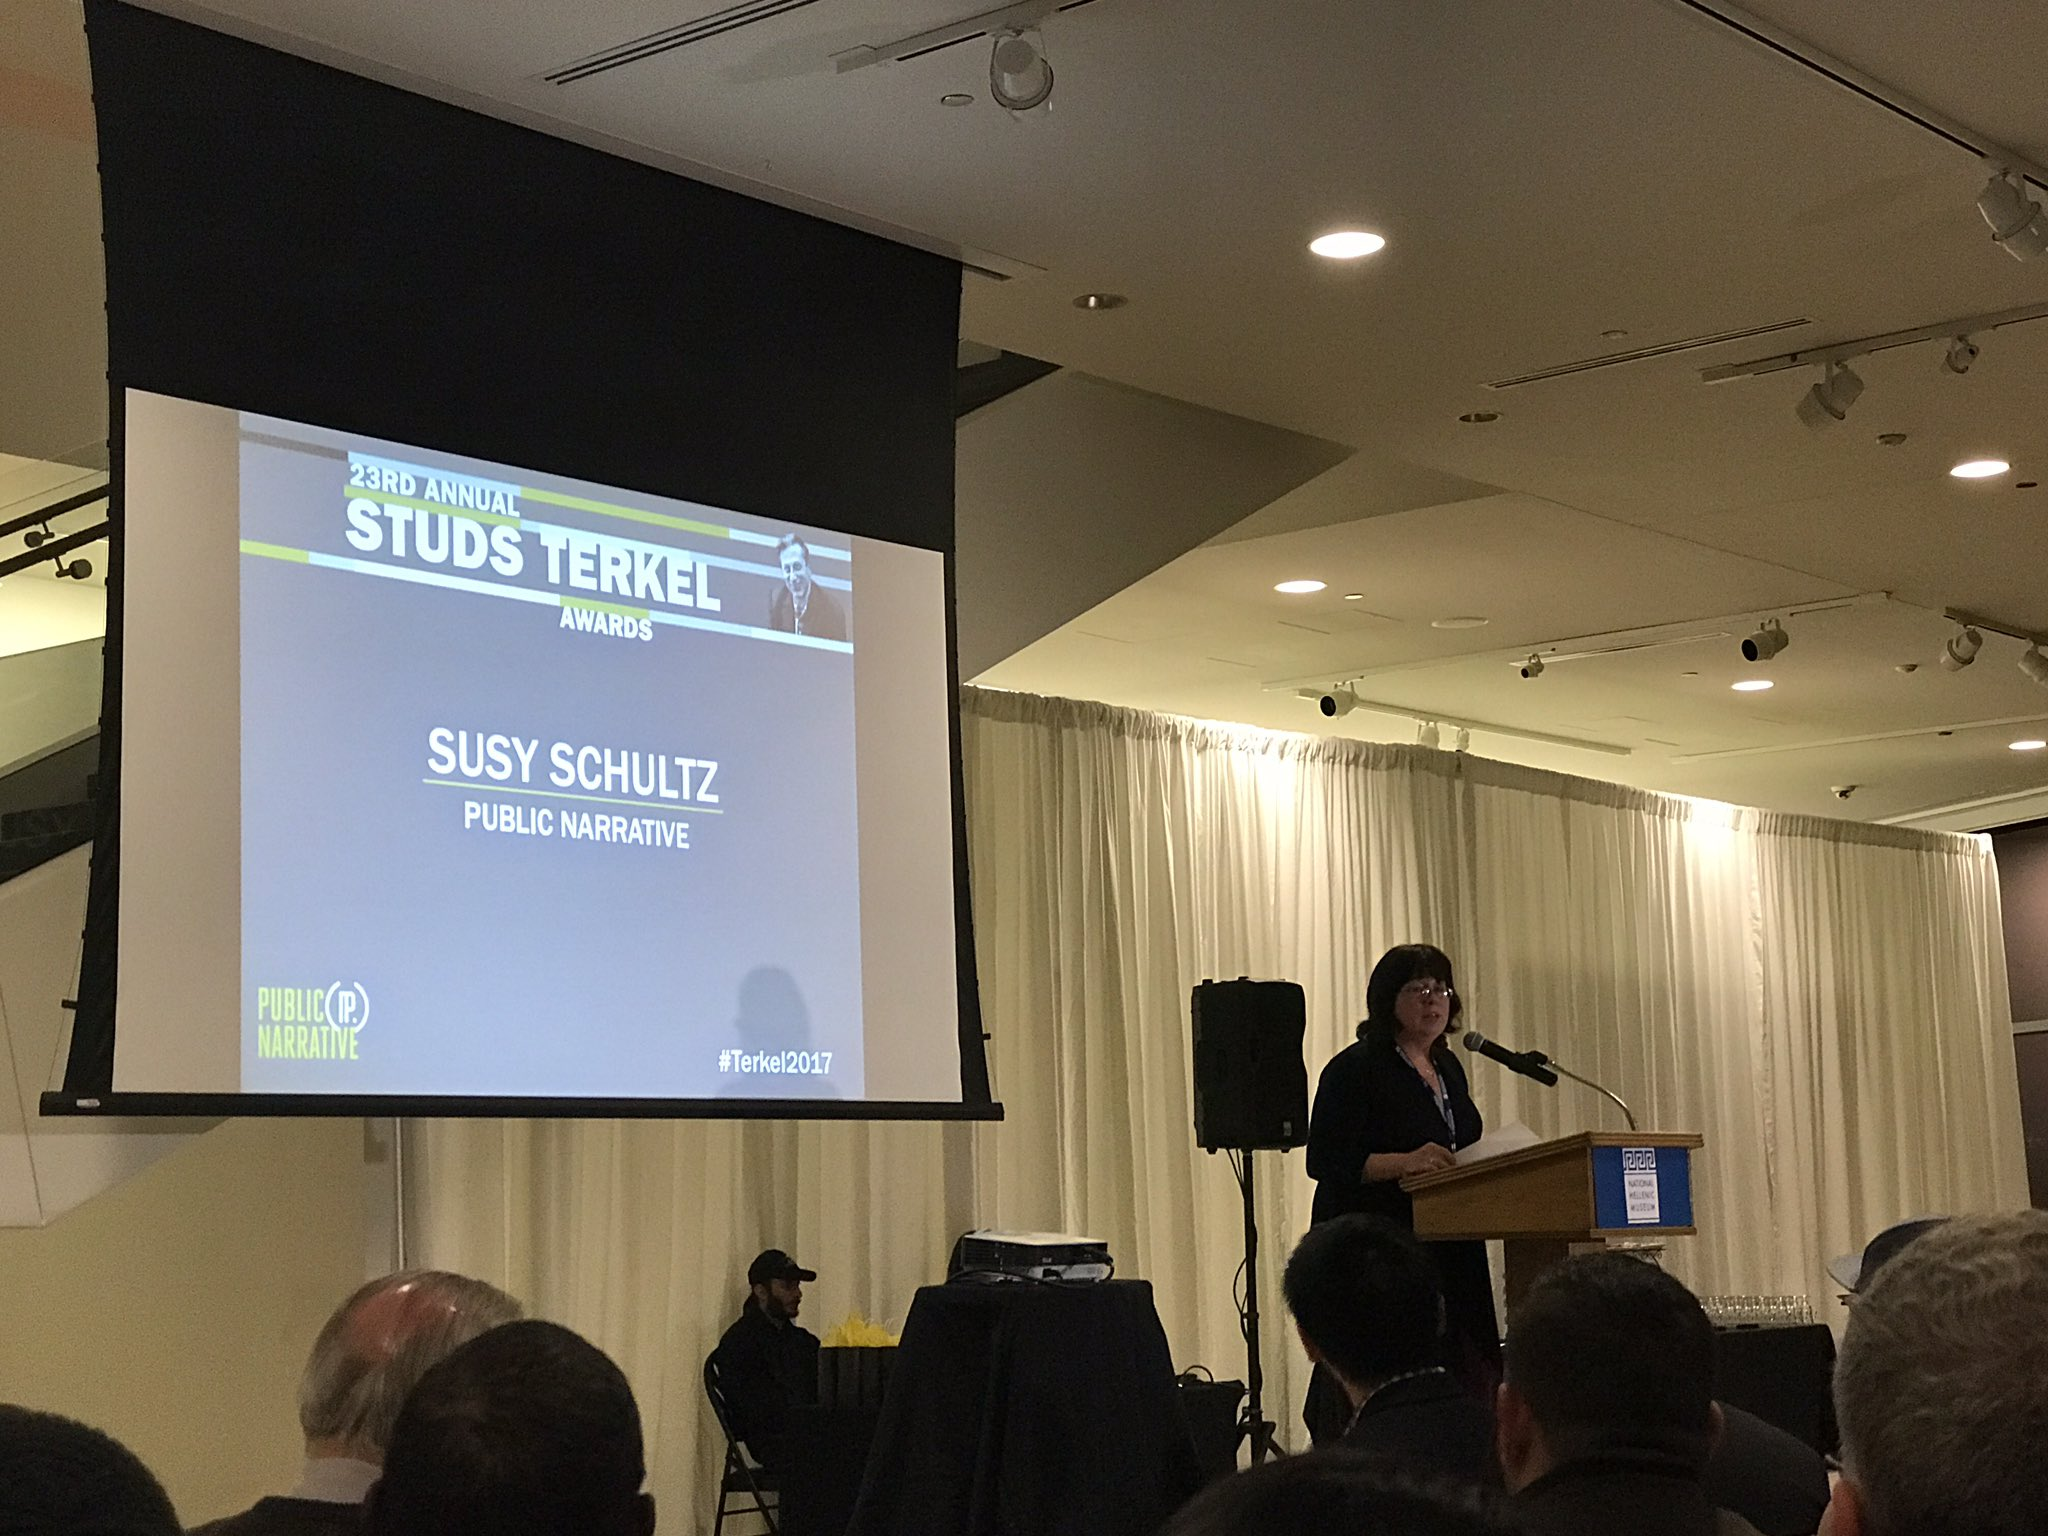 @Susys at the 23rd Annual Studs Terkel awards | #Terkel2017 https://t.co/gmOB8kbOzS